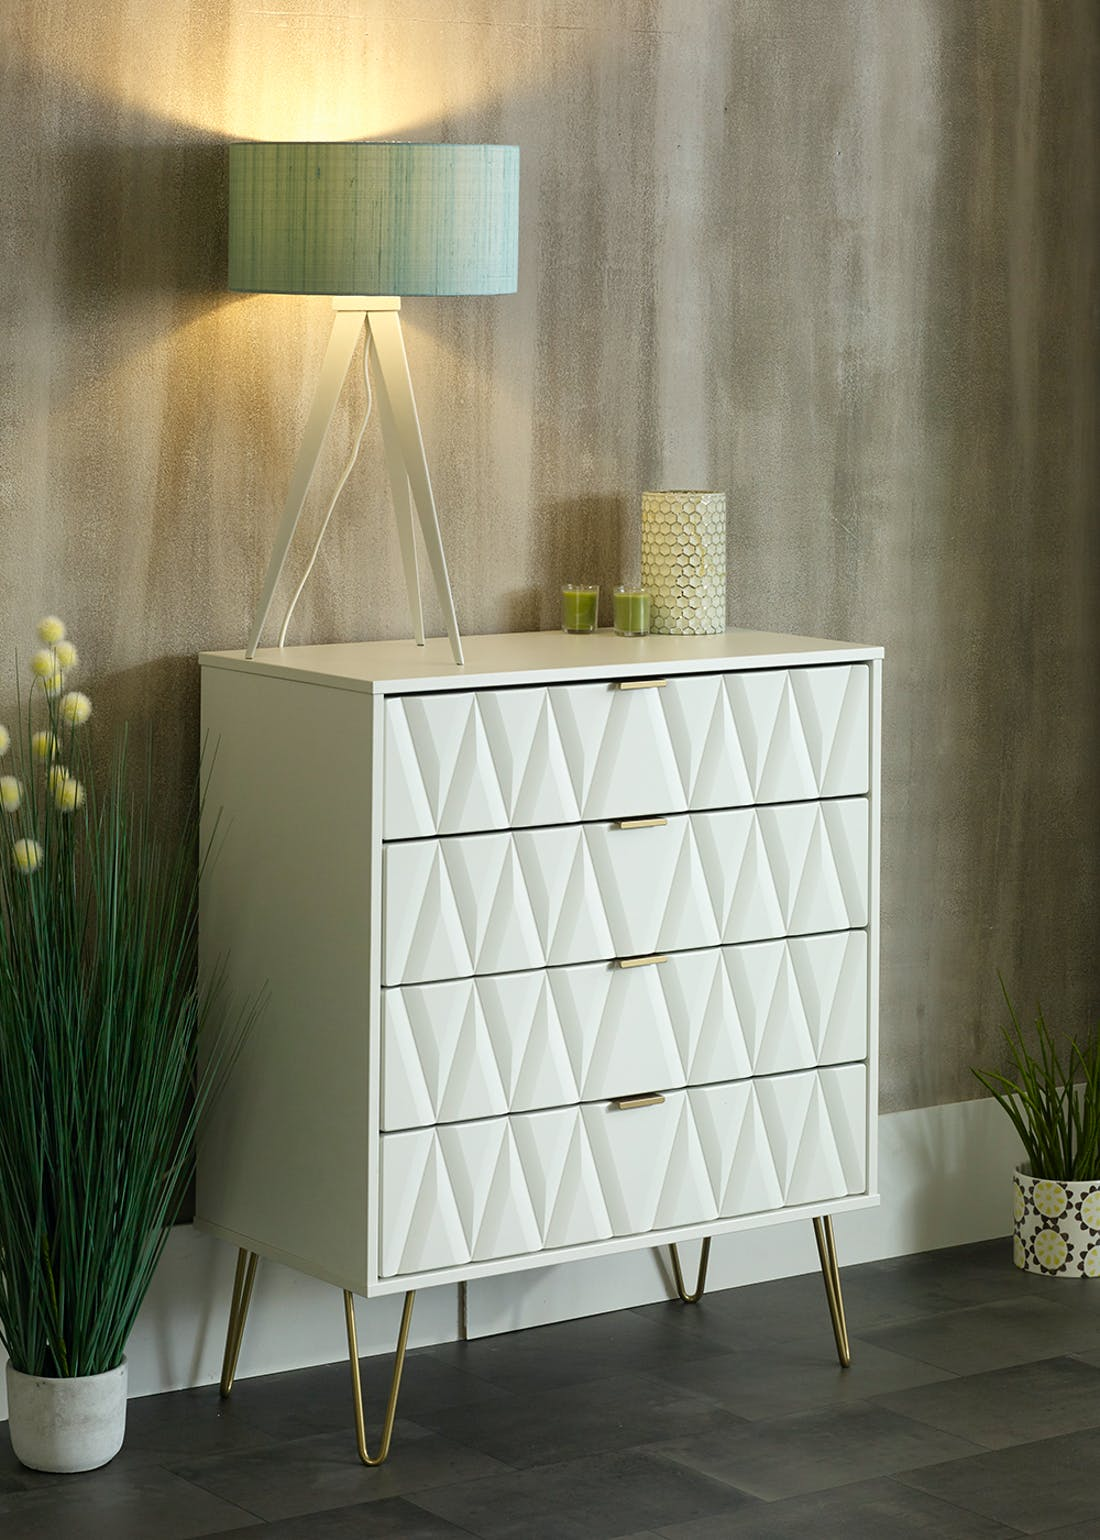 Swift Prism 1 Drawer Bedside Table (41cm x 45cm x 39.5cm)